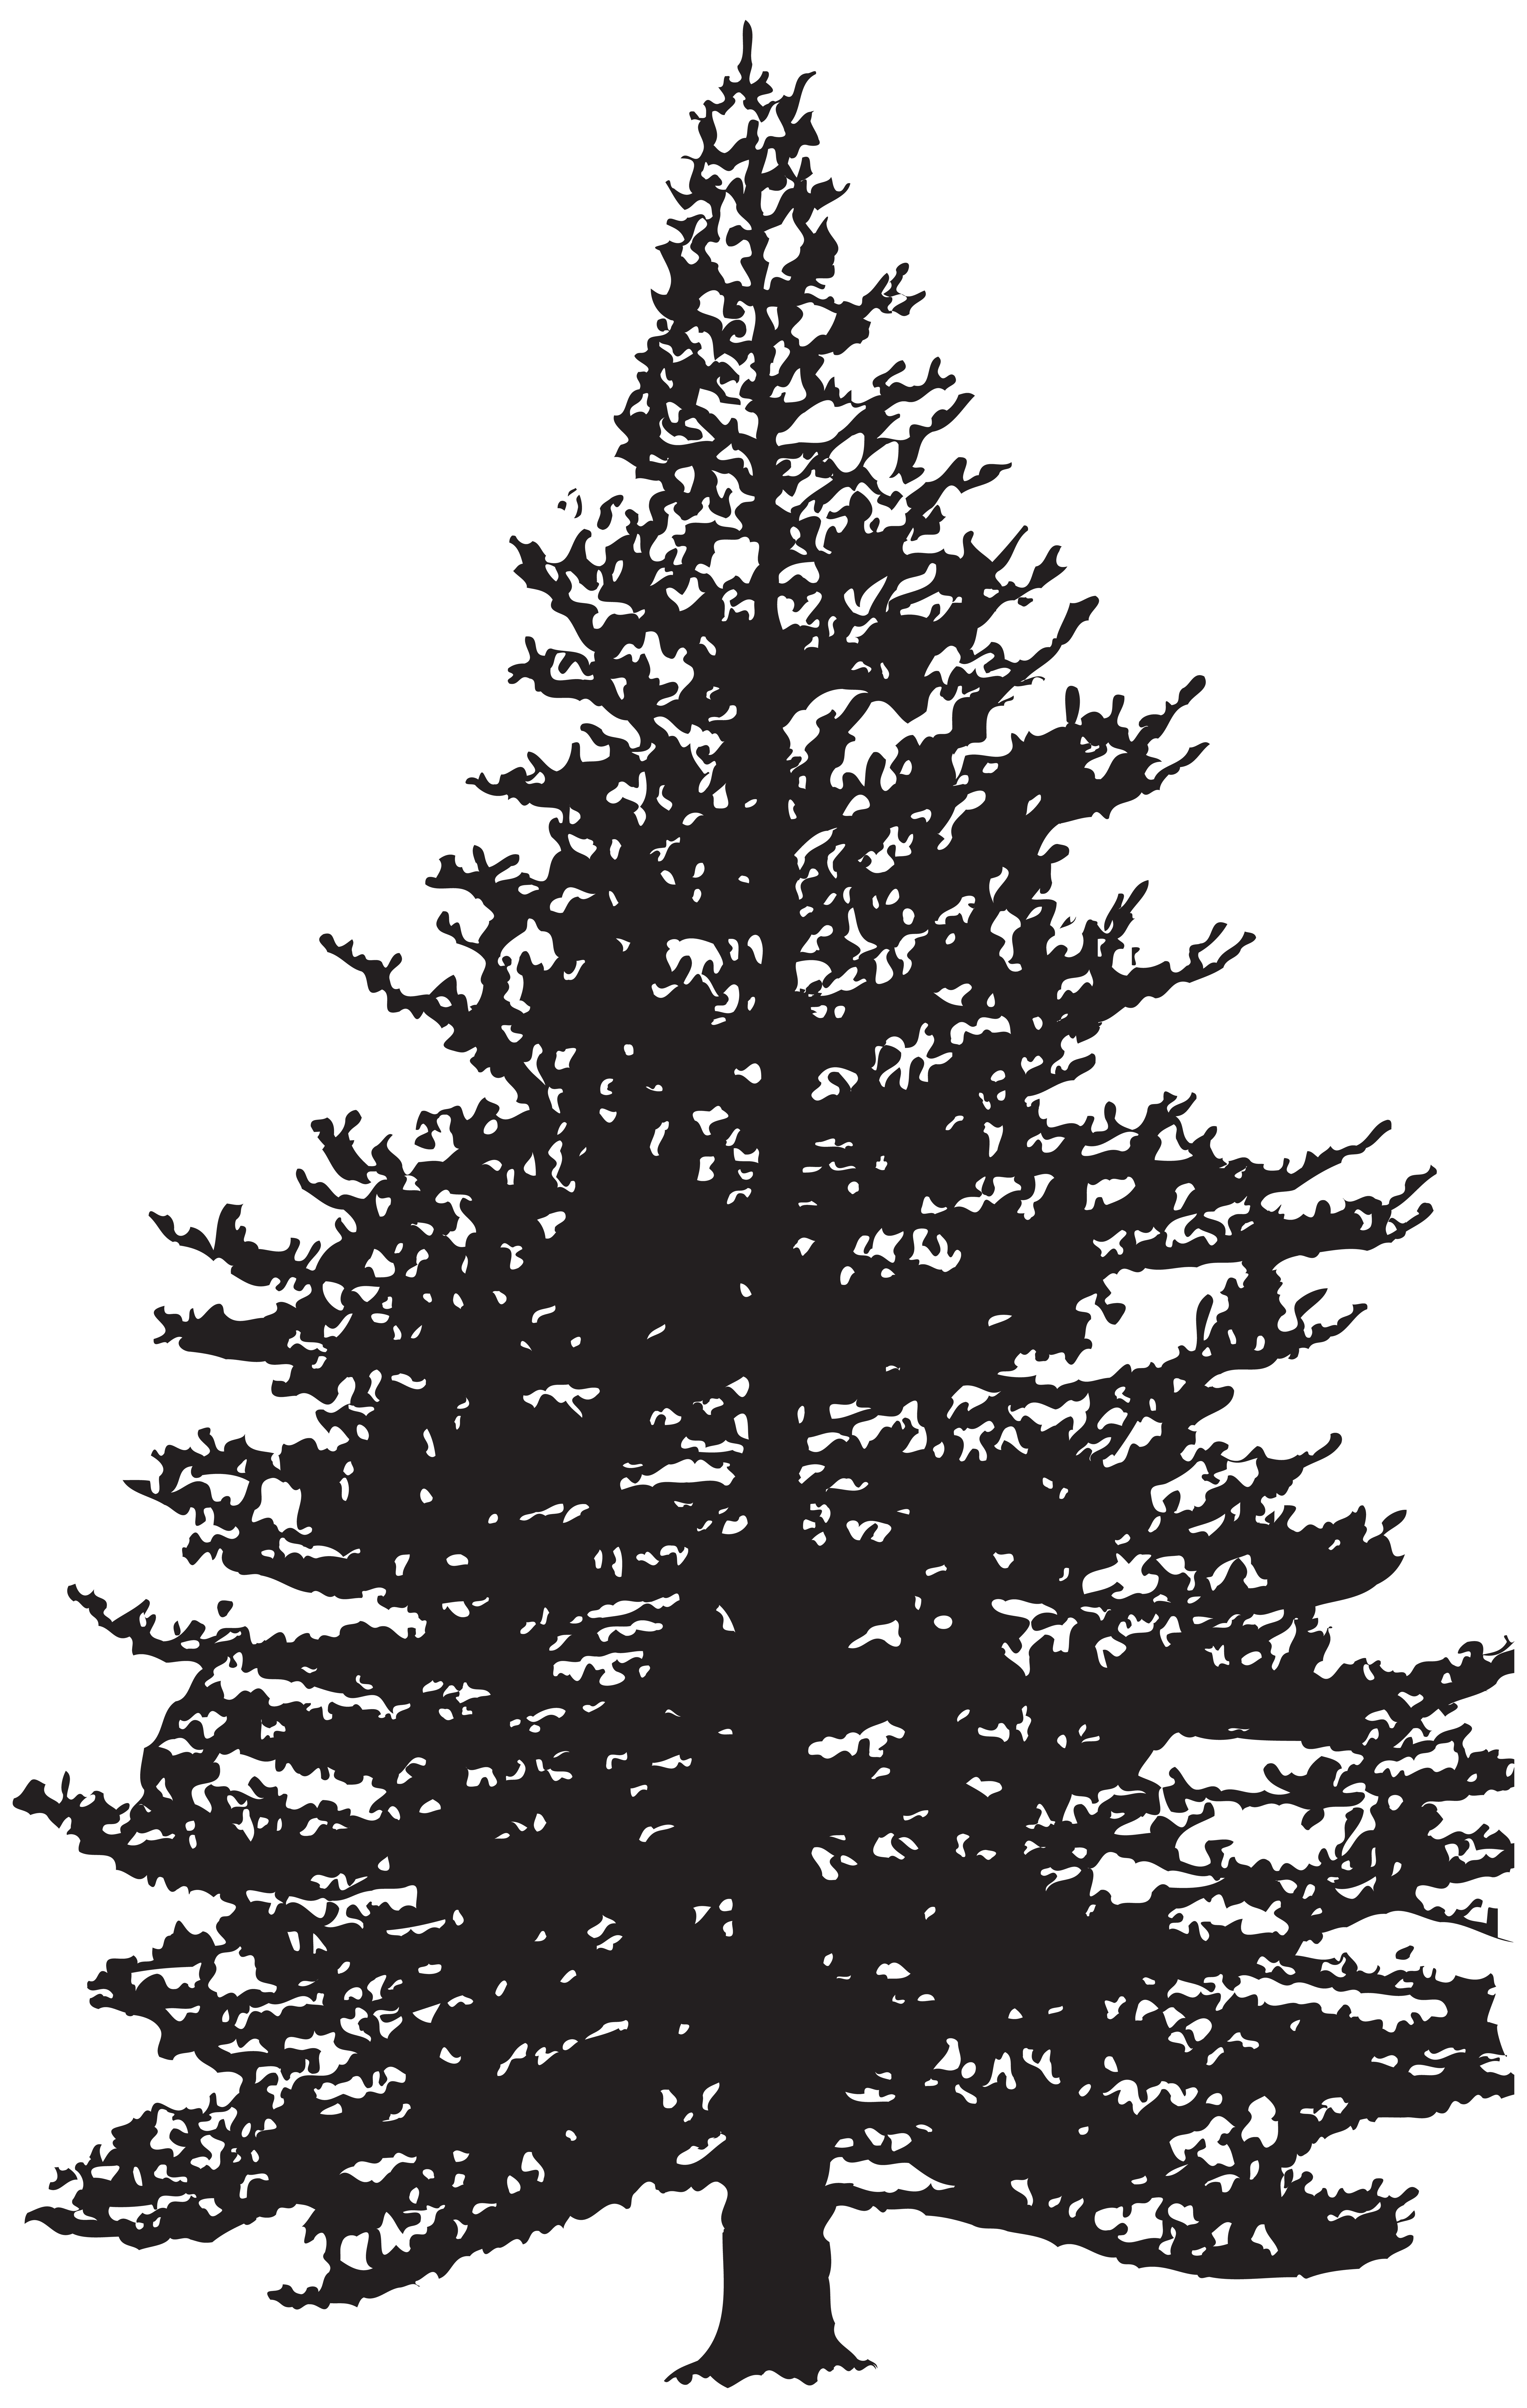 Red pine tree clipart png download Pine Tree Silhouette Clip Art Image | Gallery Yopriceville - High ... png download